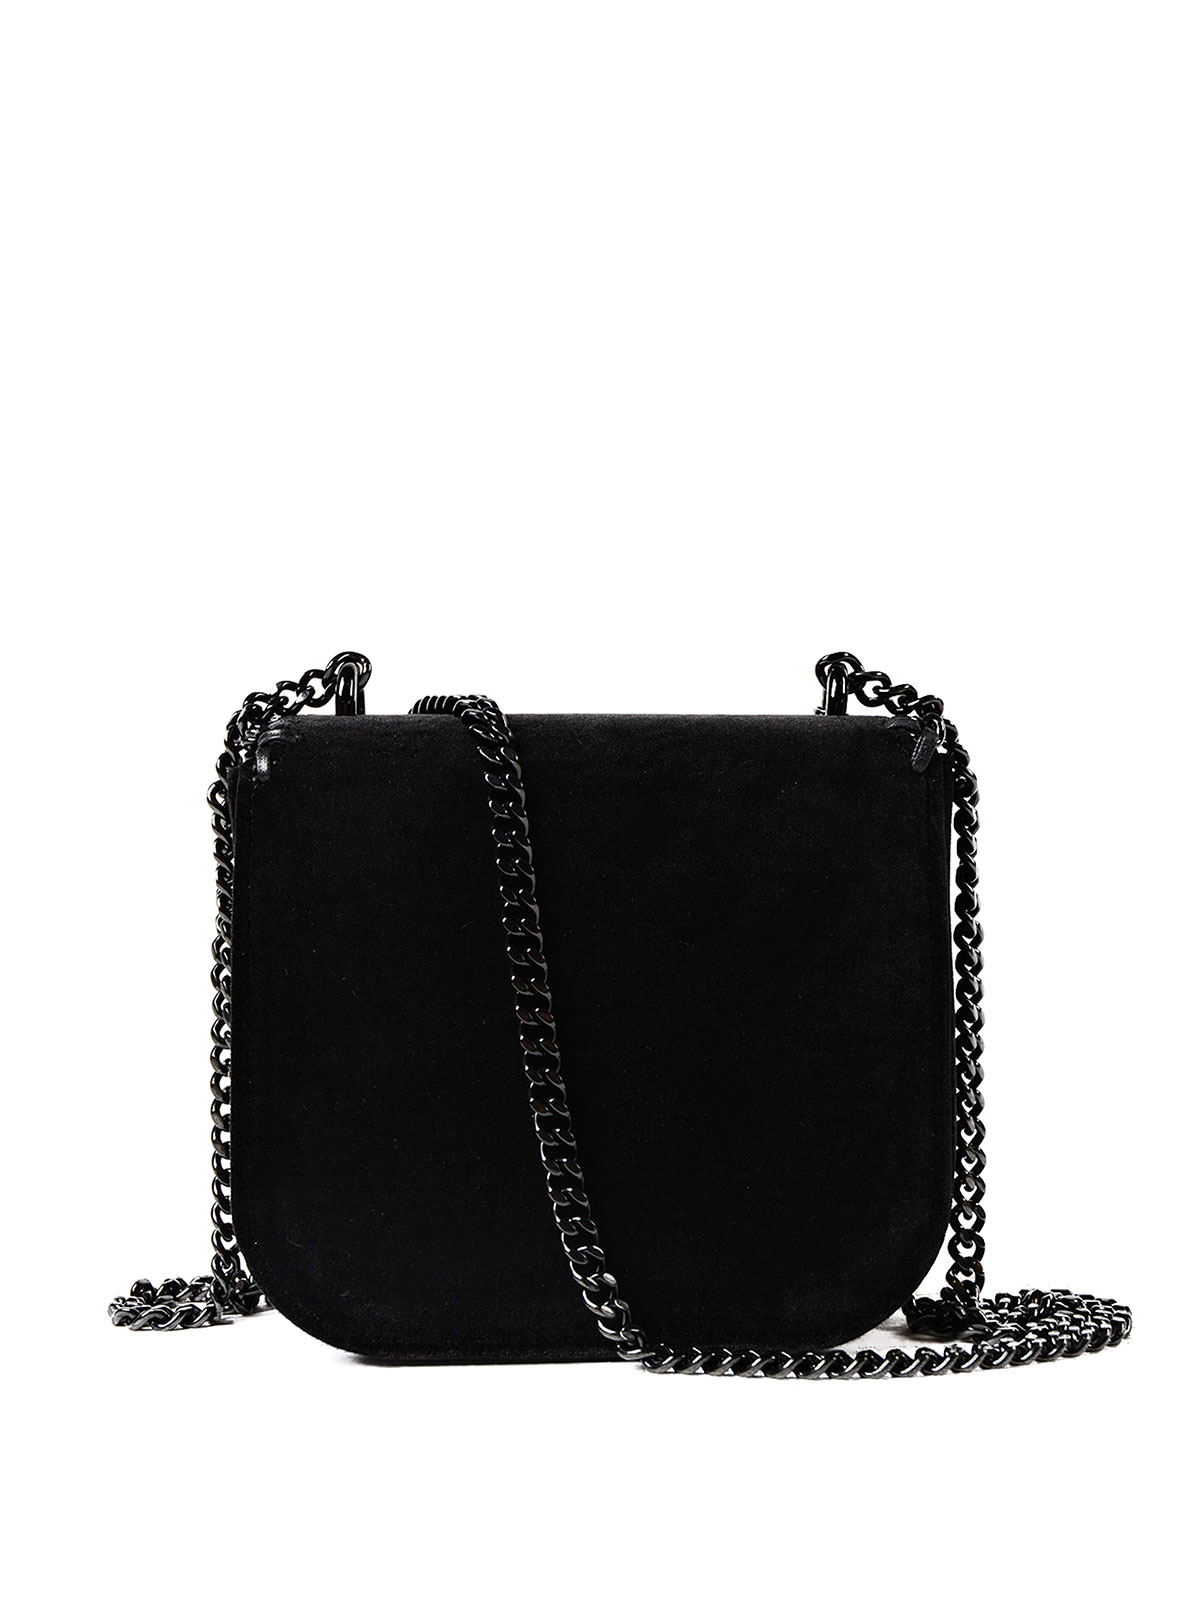 6cbca116a24f iKRIX STELLA McCARTNEY  cross body bags - Falabella Box black velvet mini  bag